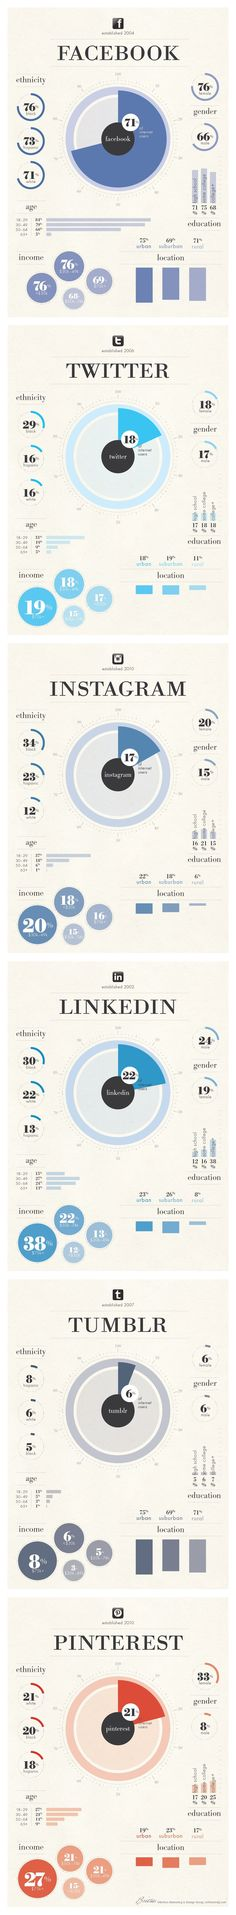 #SocialMedia 2014: User Demographics For #Facebook, Twitter, Instagram, LinkedIn, Tumblr and #Pinterest - #infographic